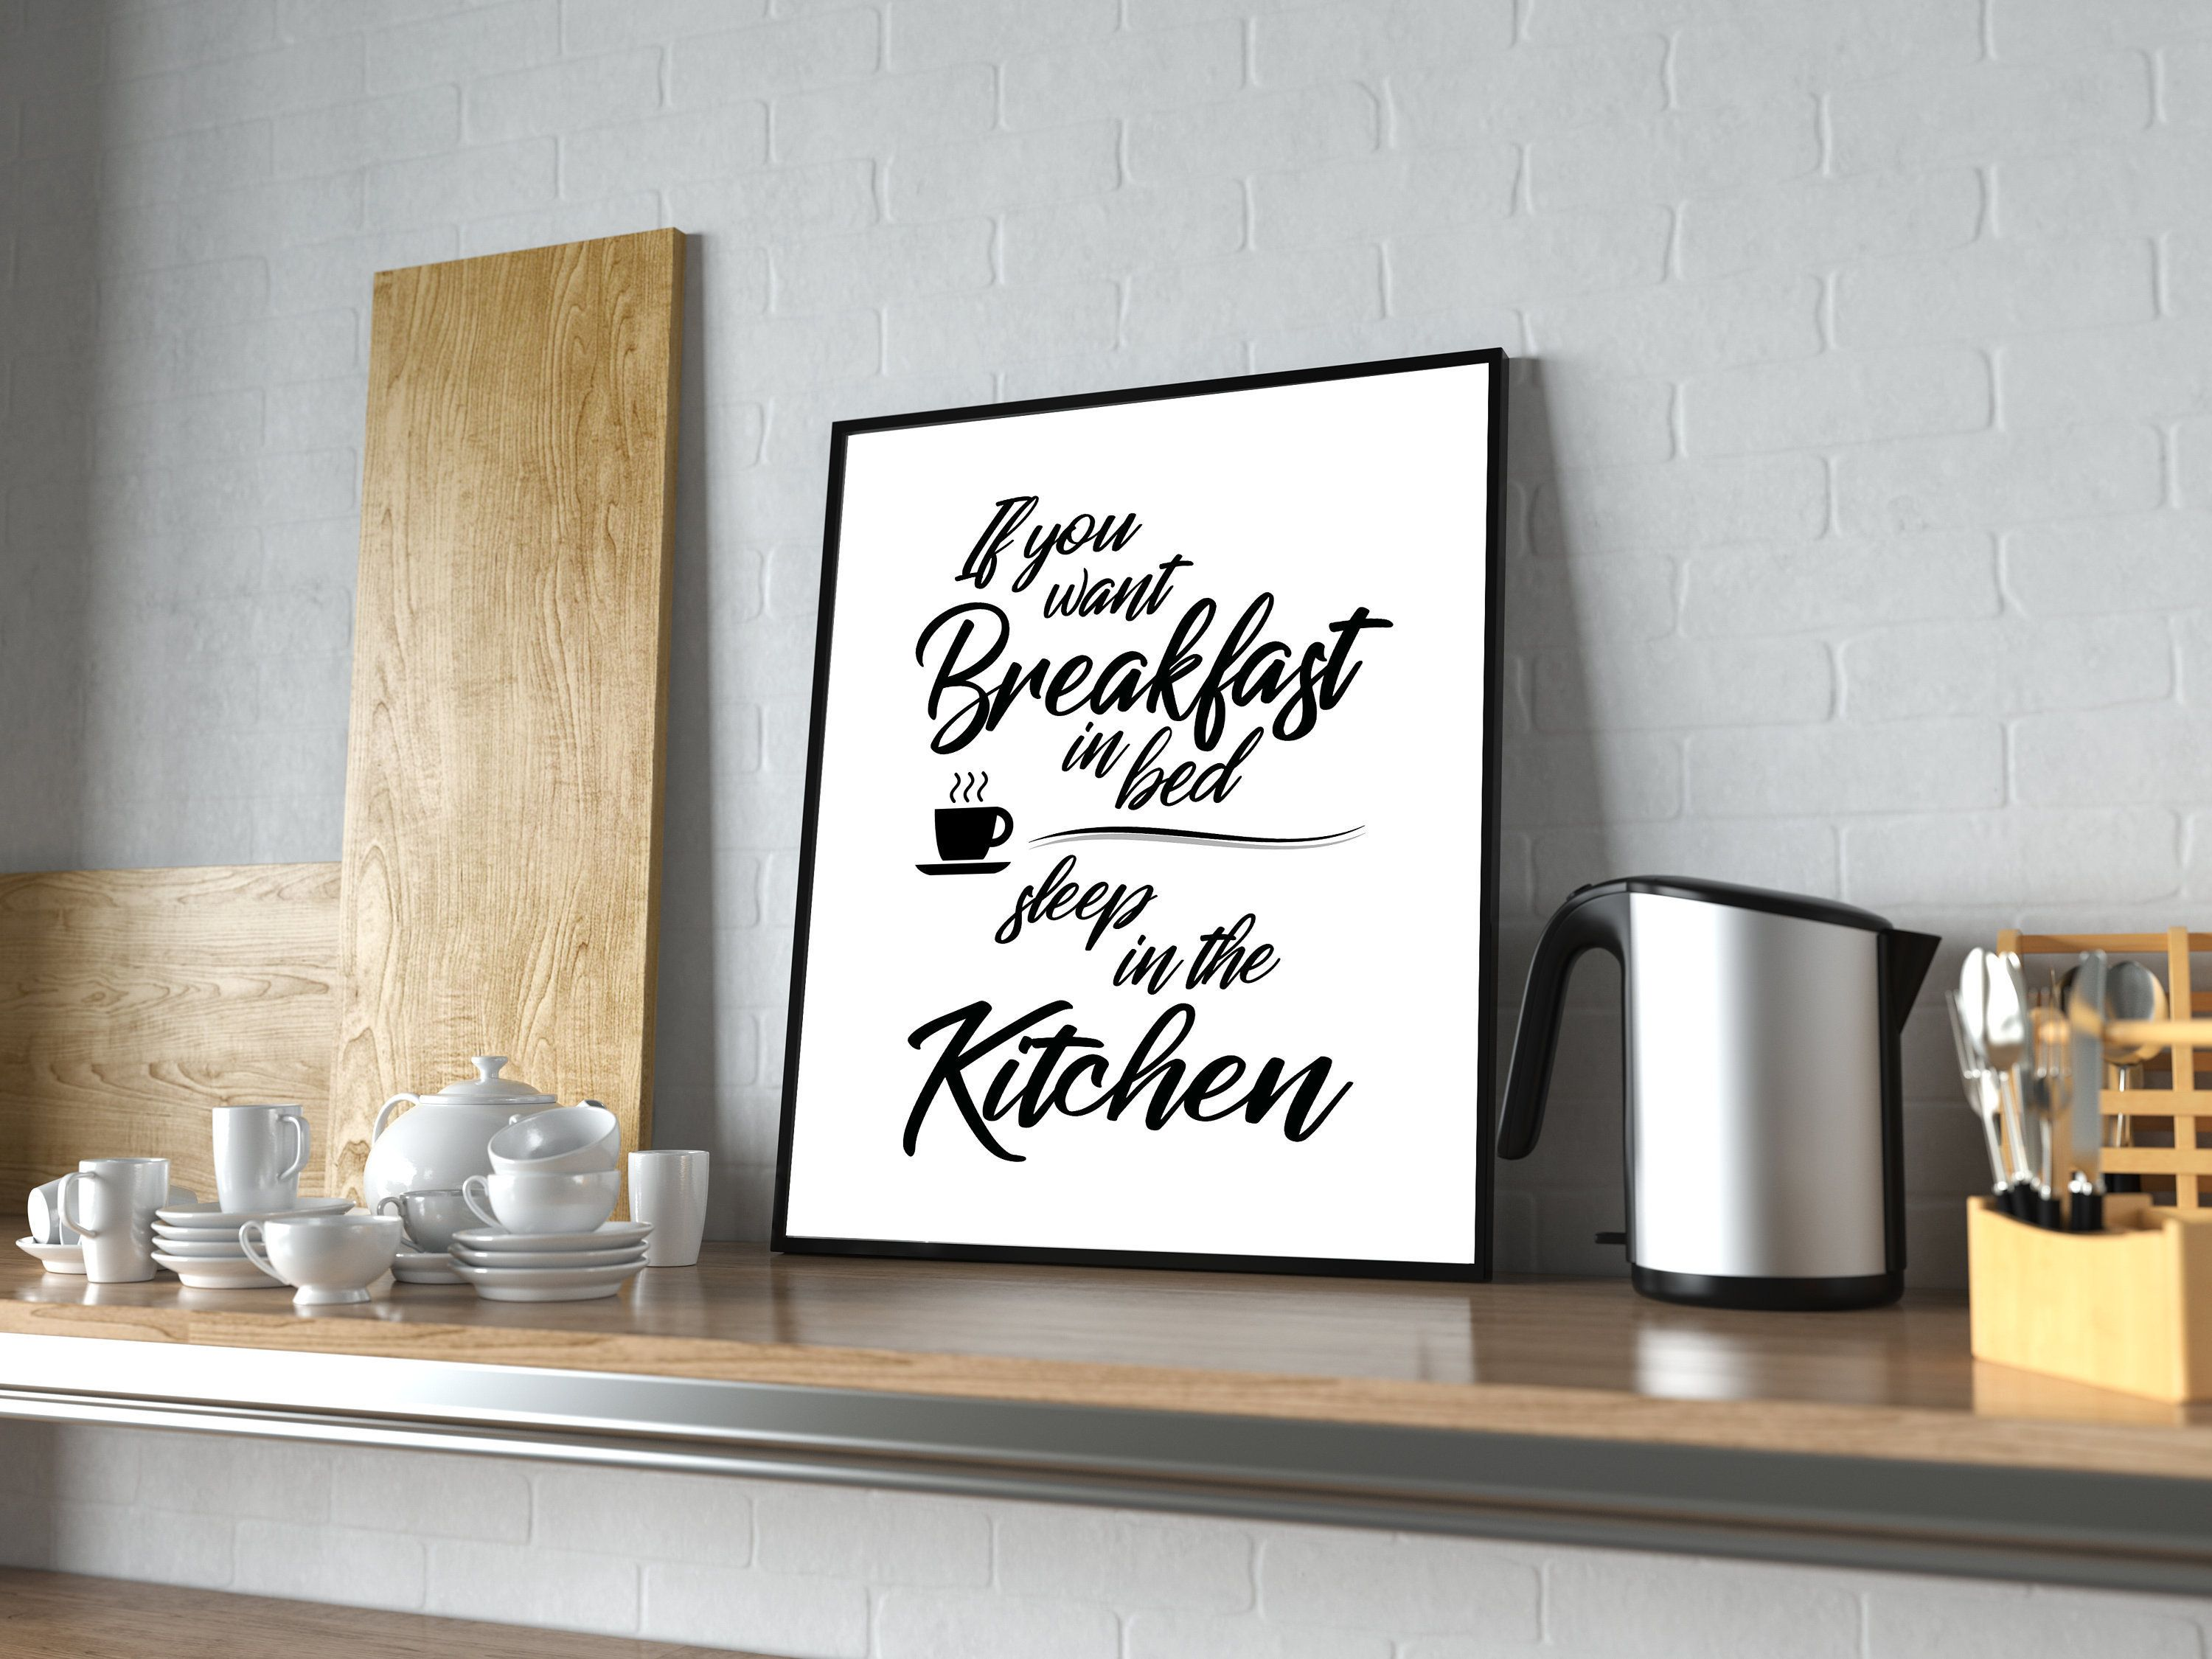 If you want breakfast in bed sleep in the kitchen kitchen sign